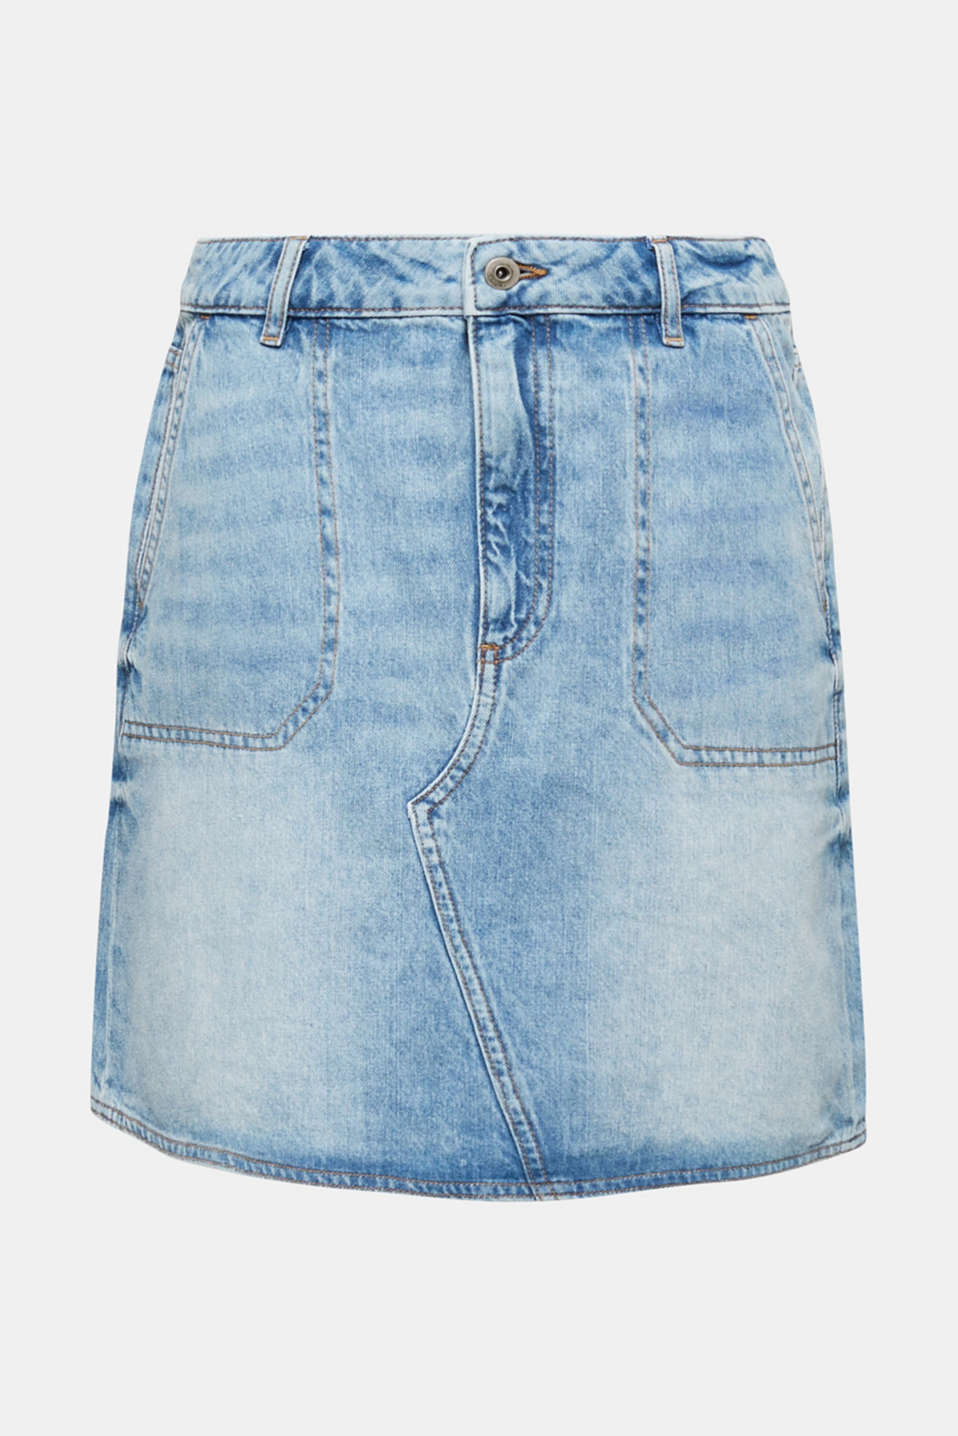 Bleached denim skirt, 100% cotton, BLUE BLEACHED, detail image number 6